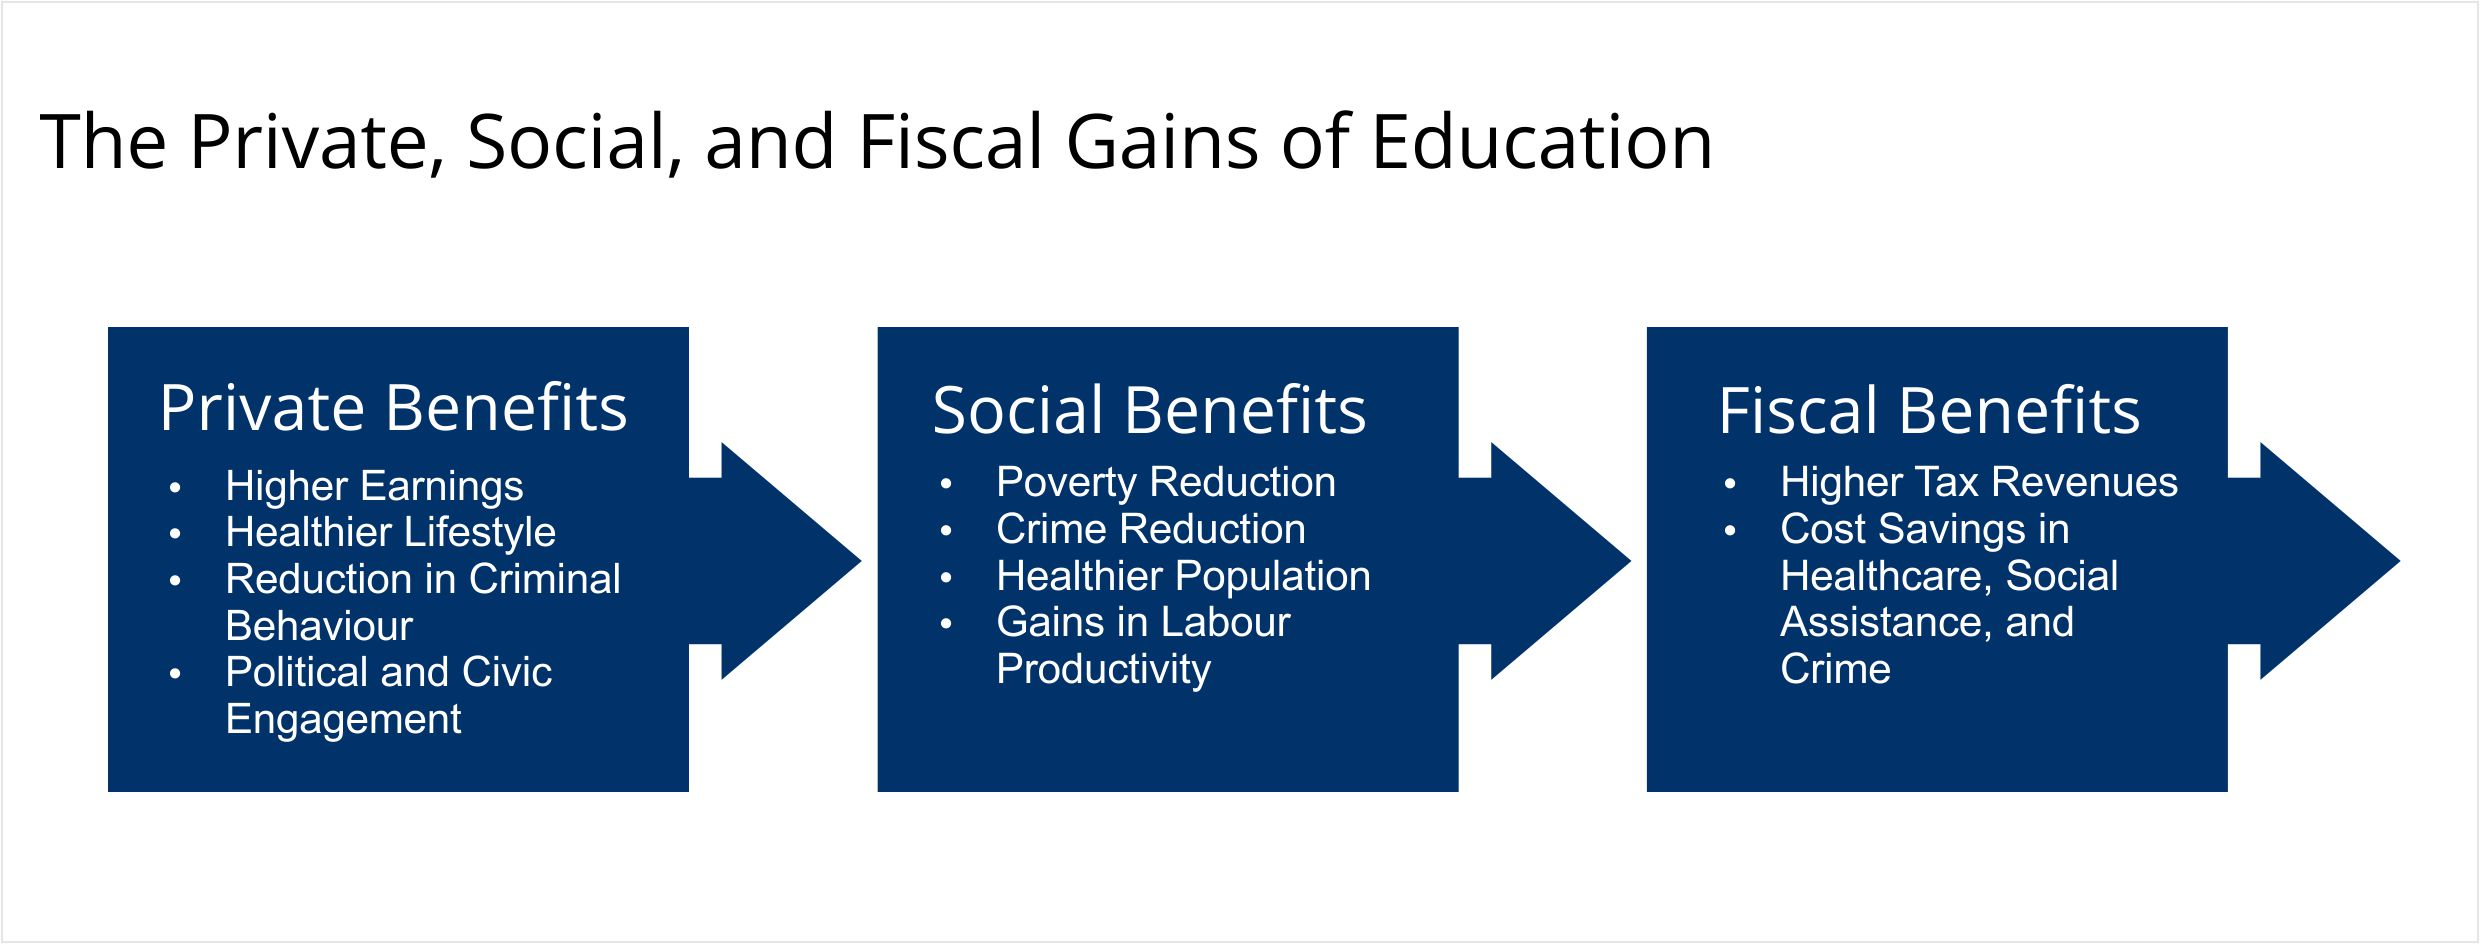 The Private, Social, and Fiscal Gains of Education